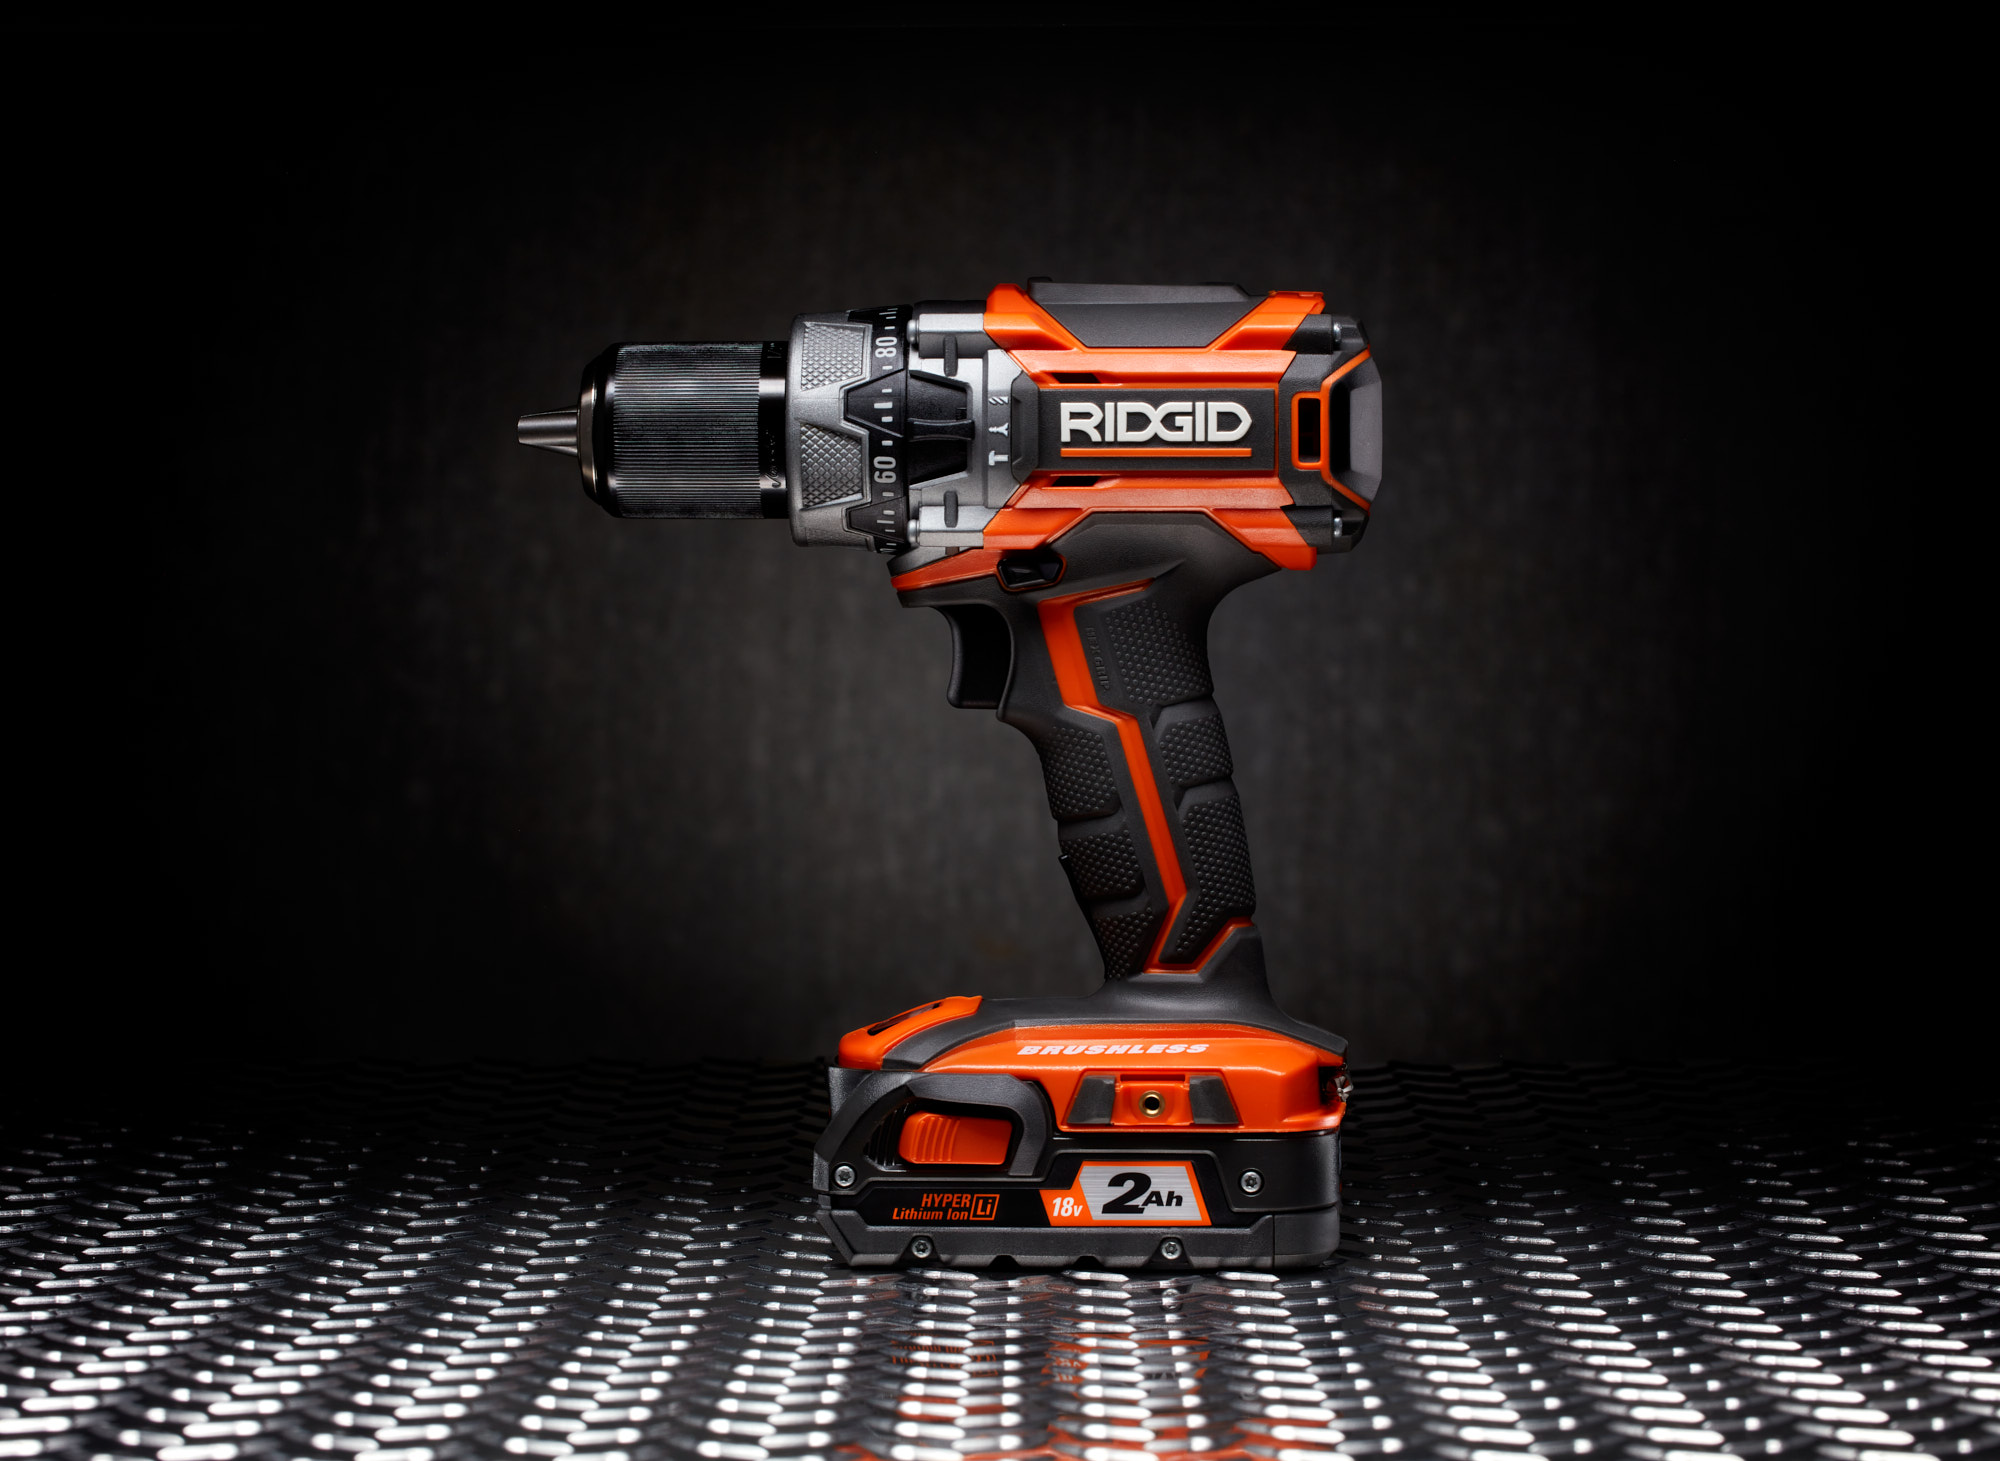 RIDGID-Drill studio product photo on diamond plate with concrete wall in background.